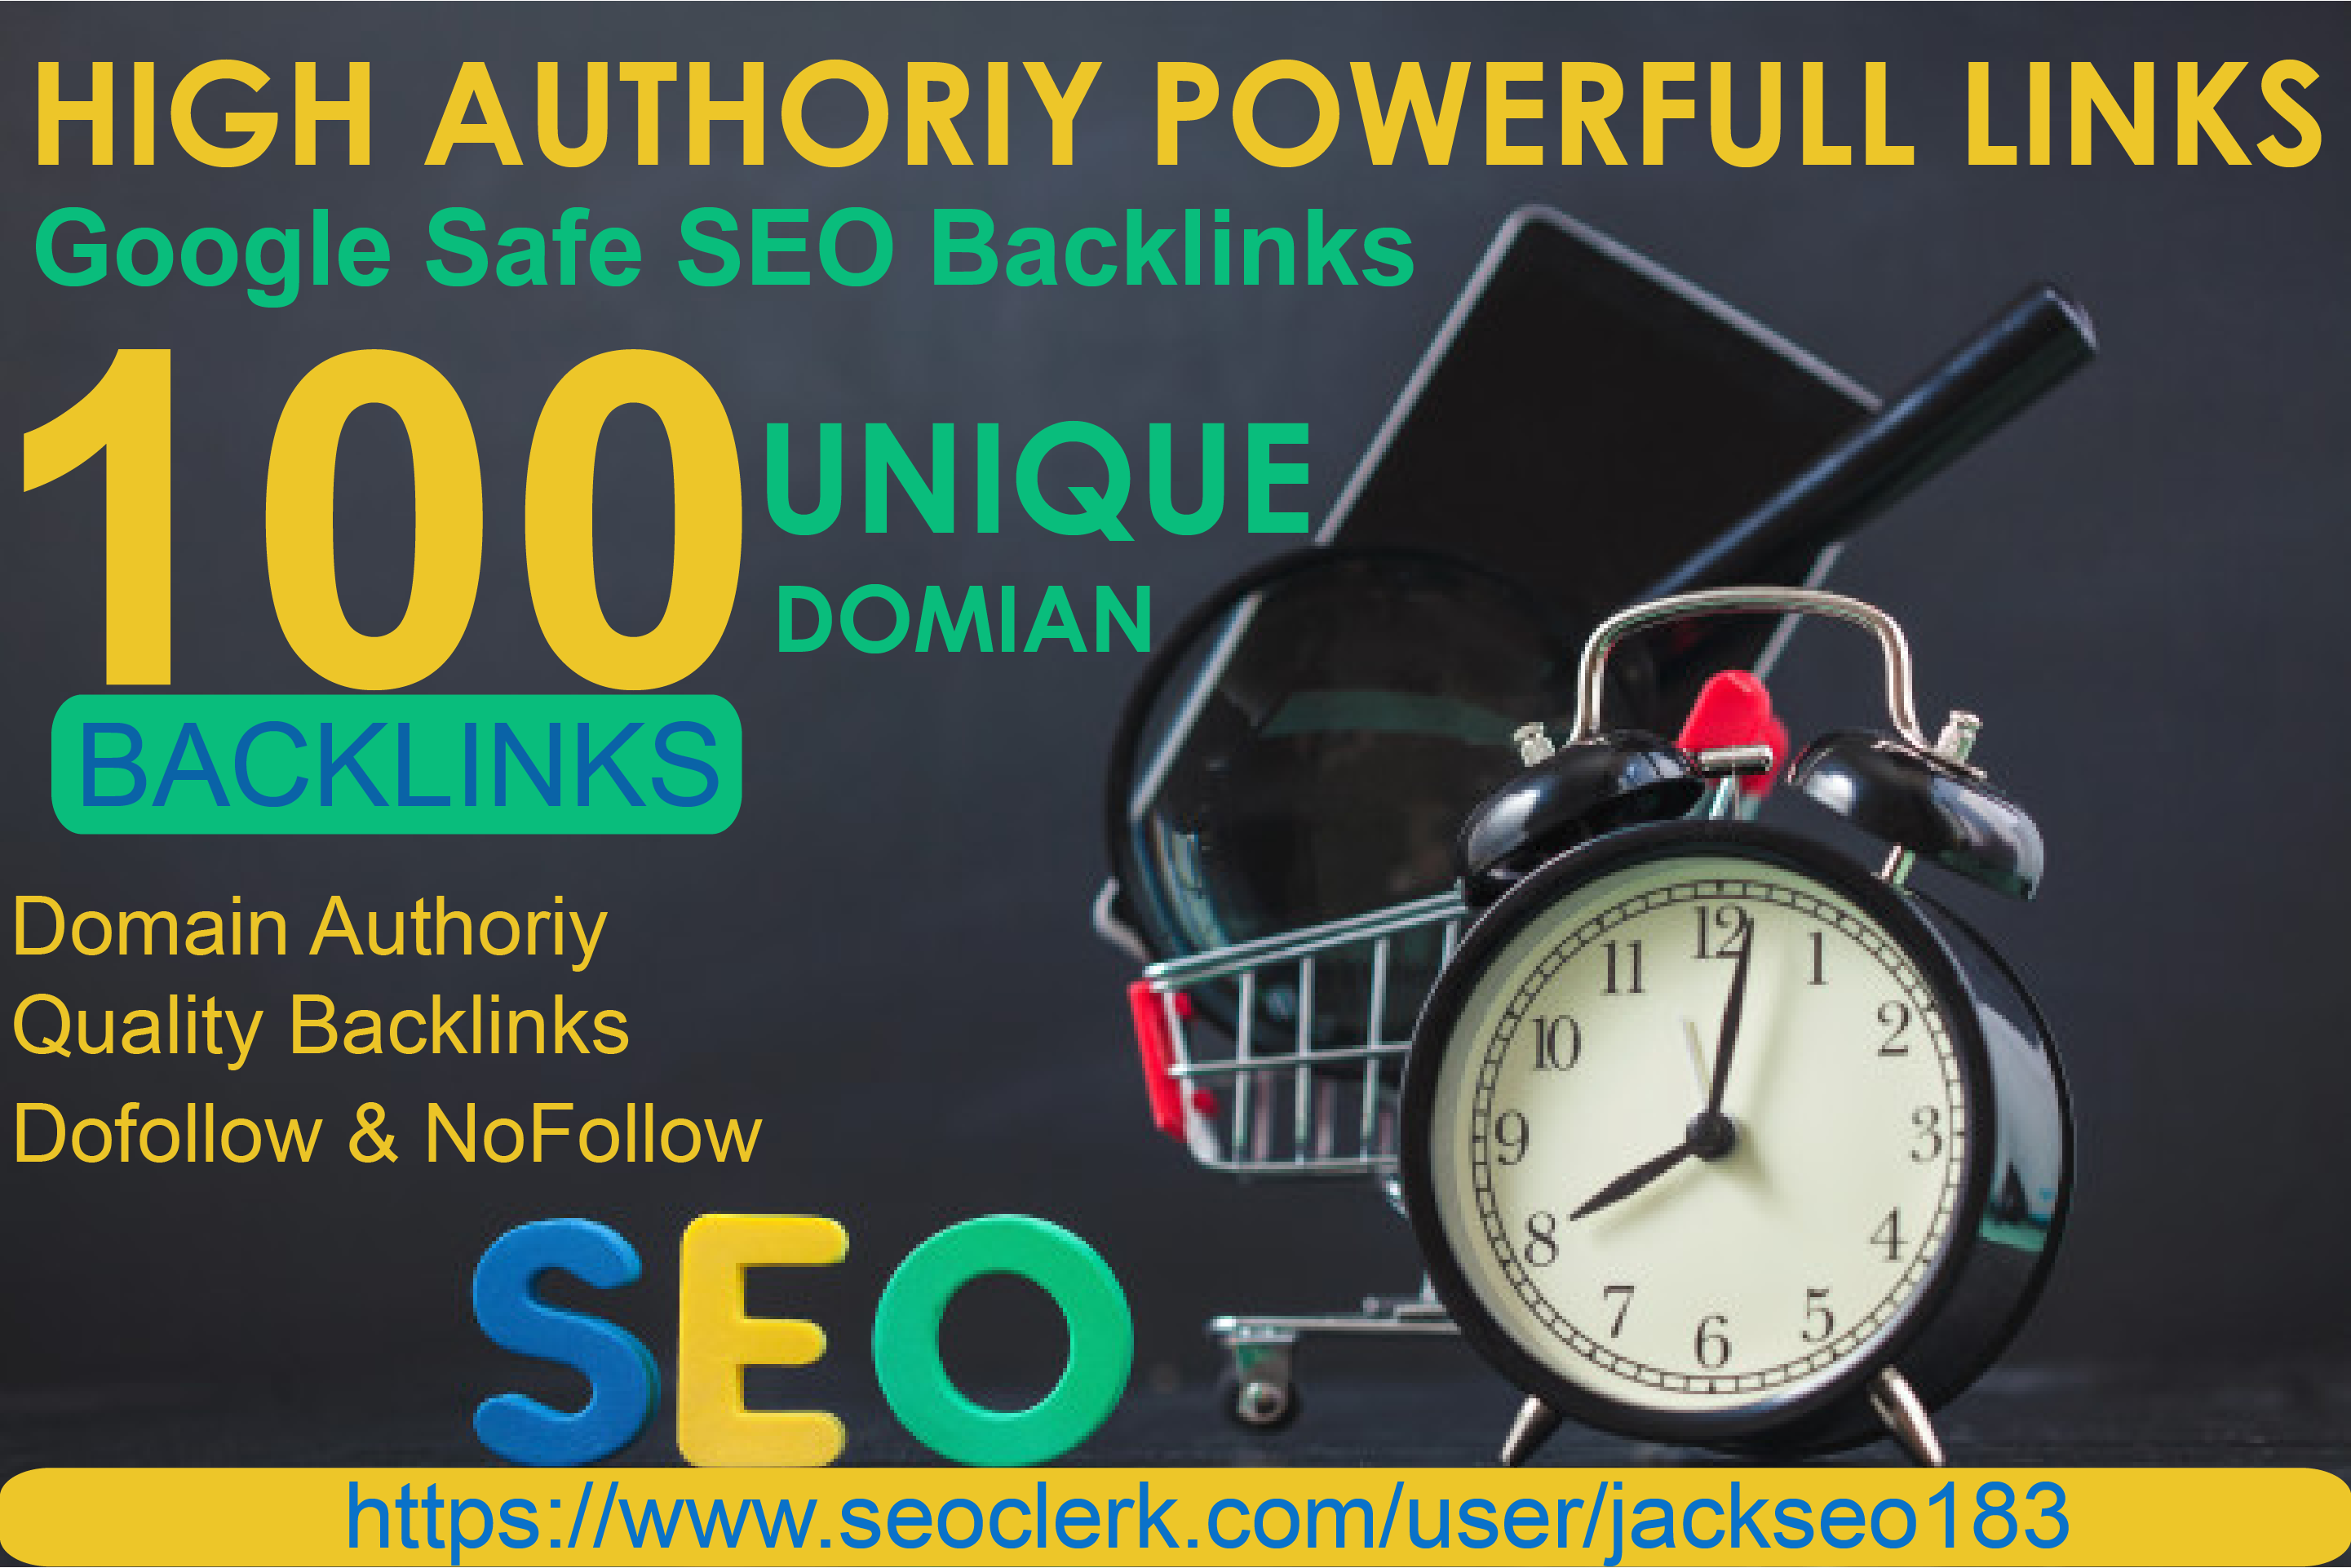 I will create 100 Unique Domain SEO backlinks, link building